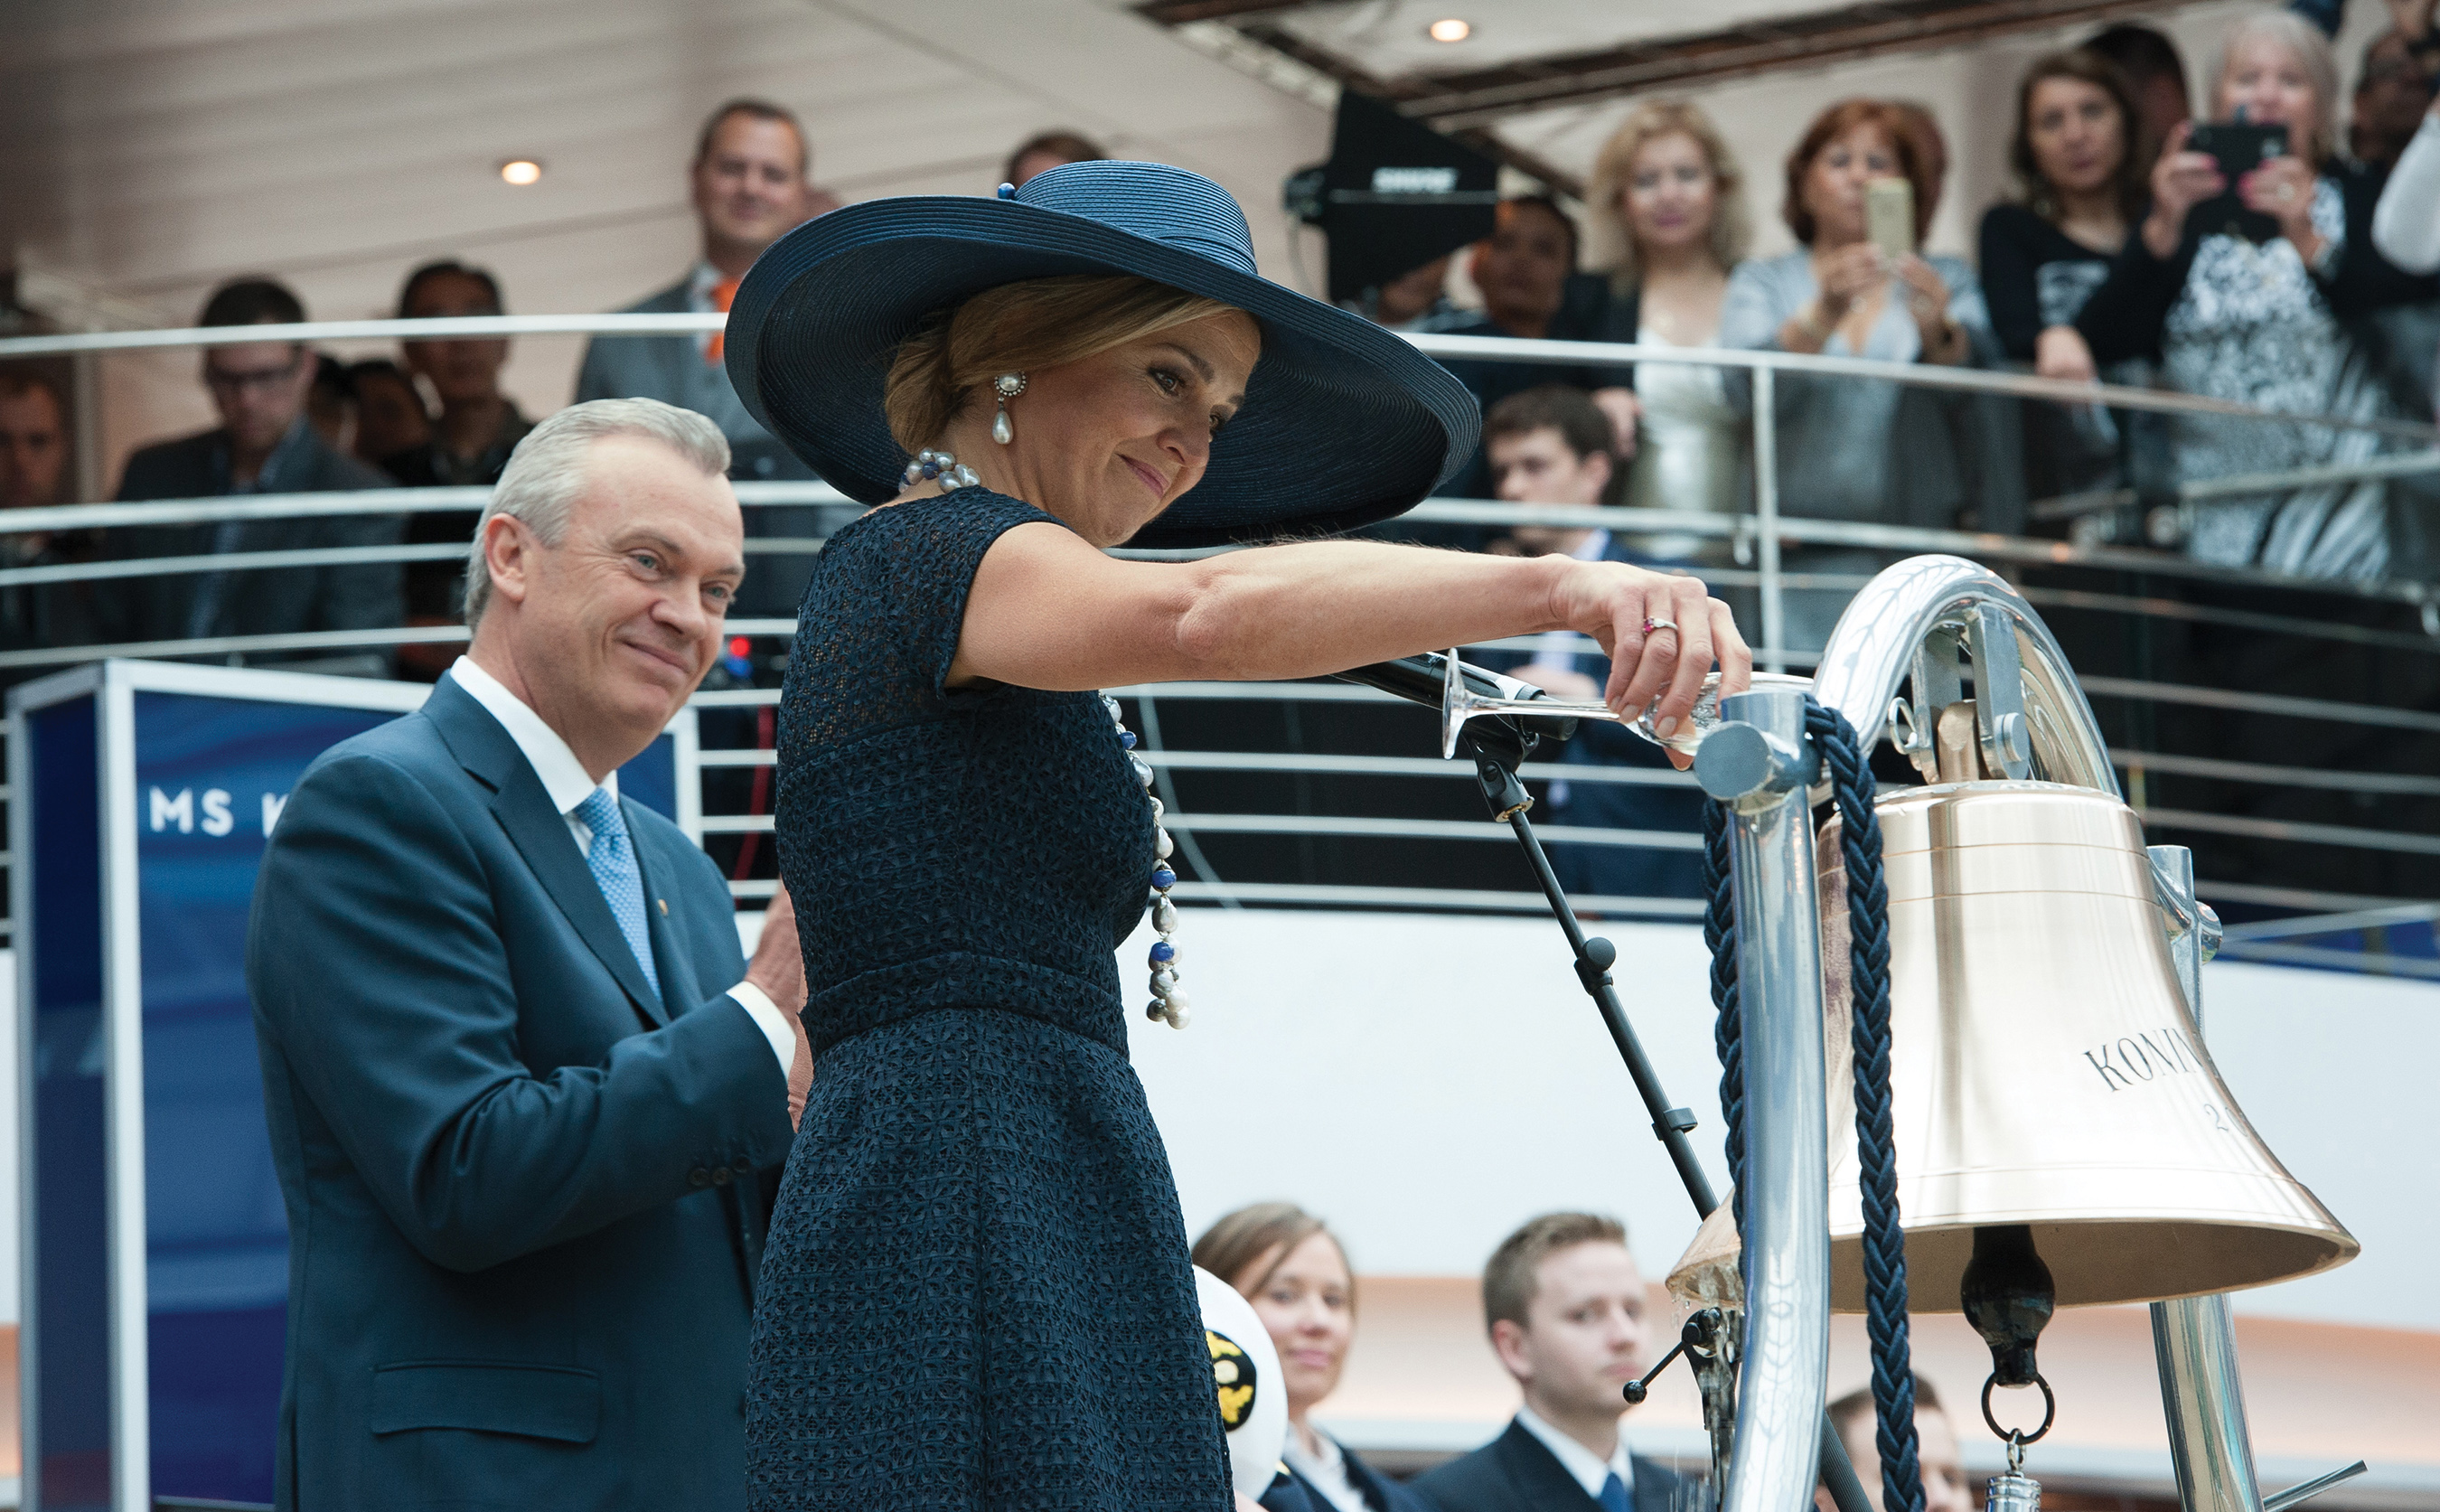 Her Majesty Queen Máxima performs the ceremonial honors of blessing the ship's bell in the Lido pool area by pouring a glass of champagne over the bell while Holland America Group CEO Stein Kruse watches.